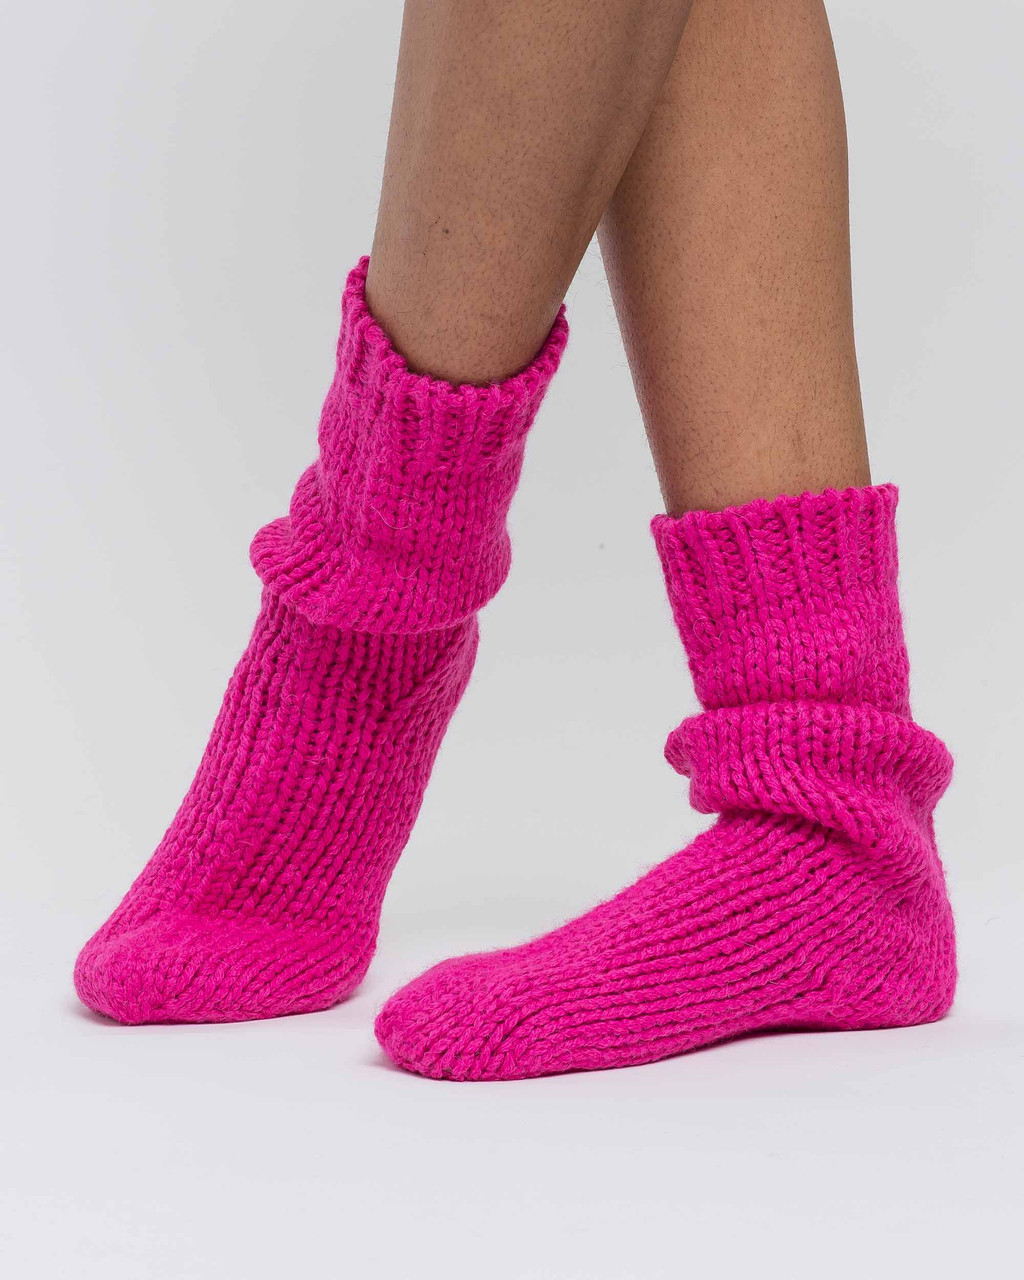 Alicia Adams Alpaca Lounge Sock, alpaca socks, womens alpaca socks, alpaca socks men, alpaca wool socks, shocking pink alpaca socks